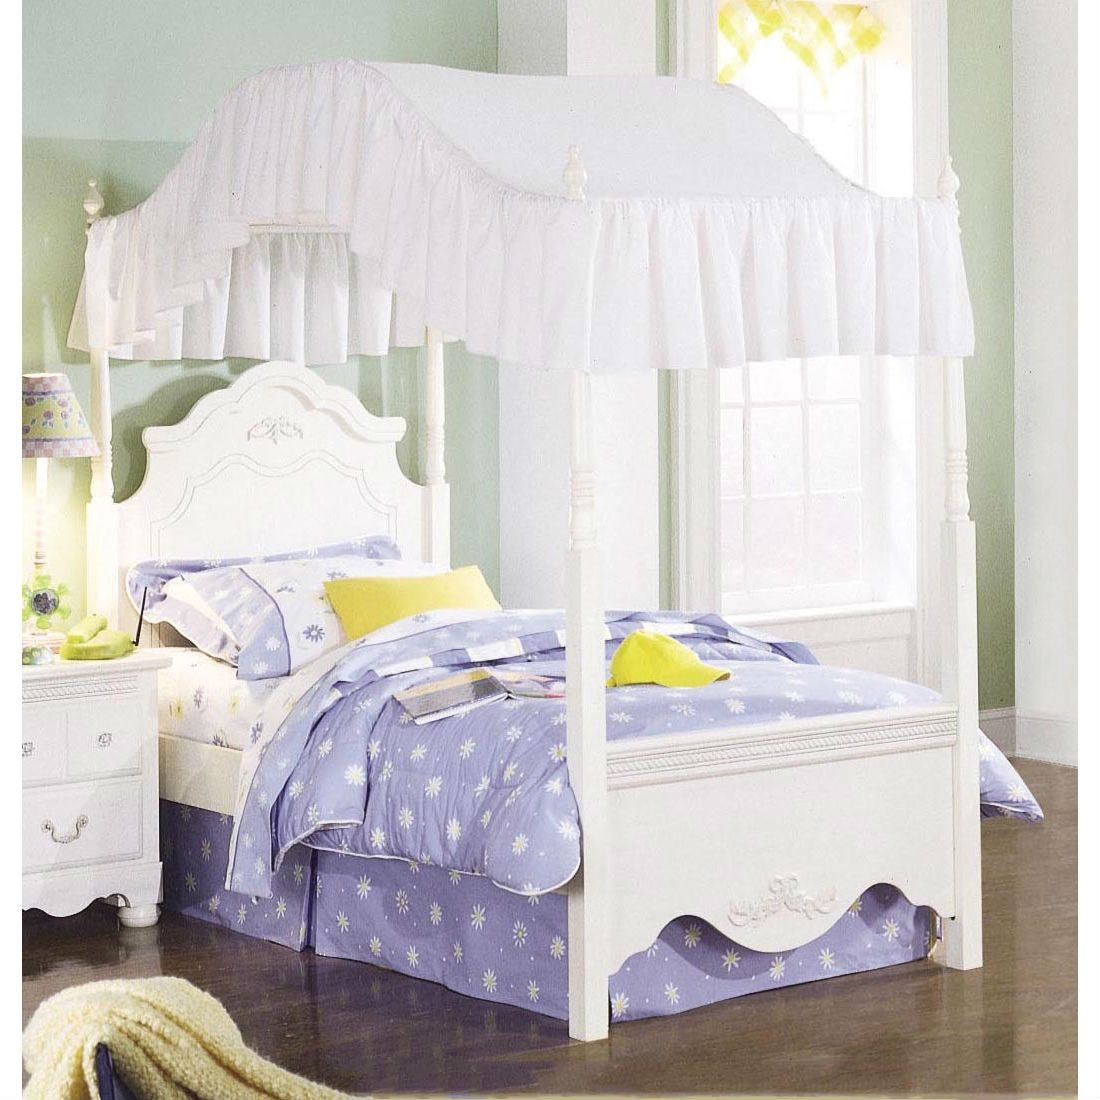 Twin Size Victorian Style White Wood Canopy Bed Fabric Not Included Quality House